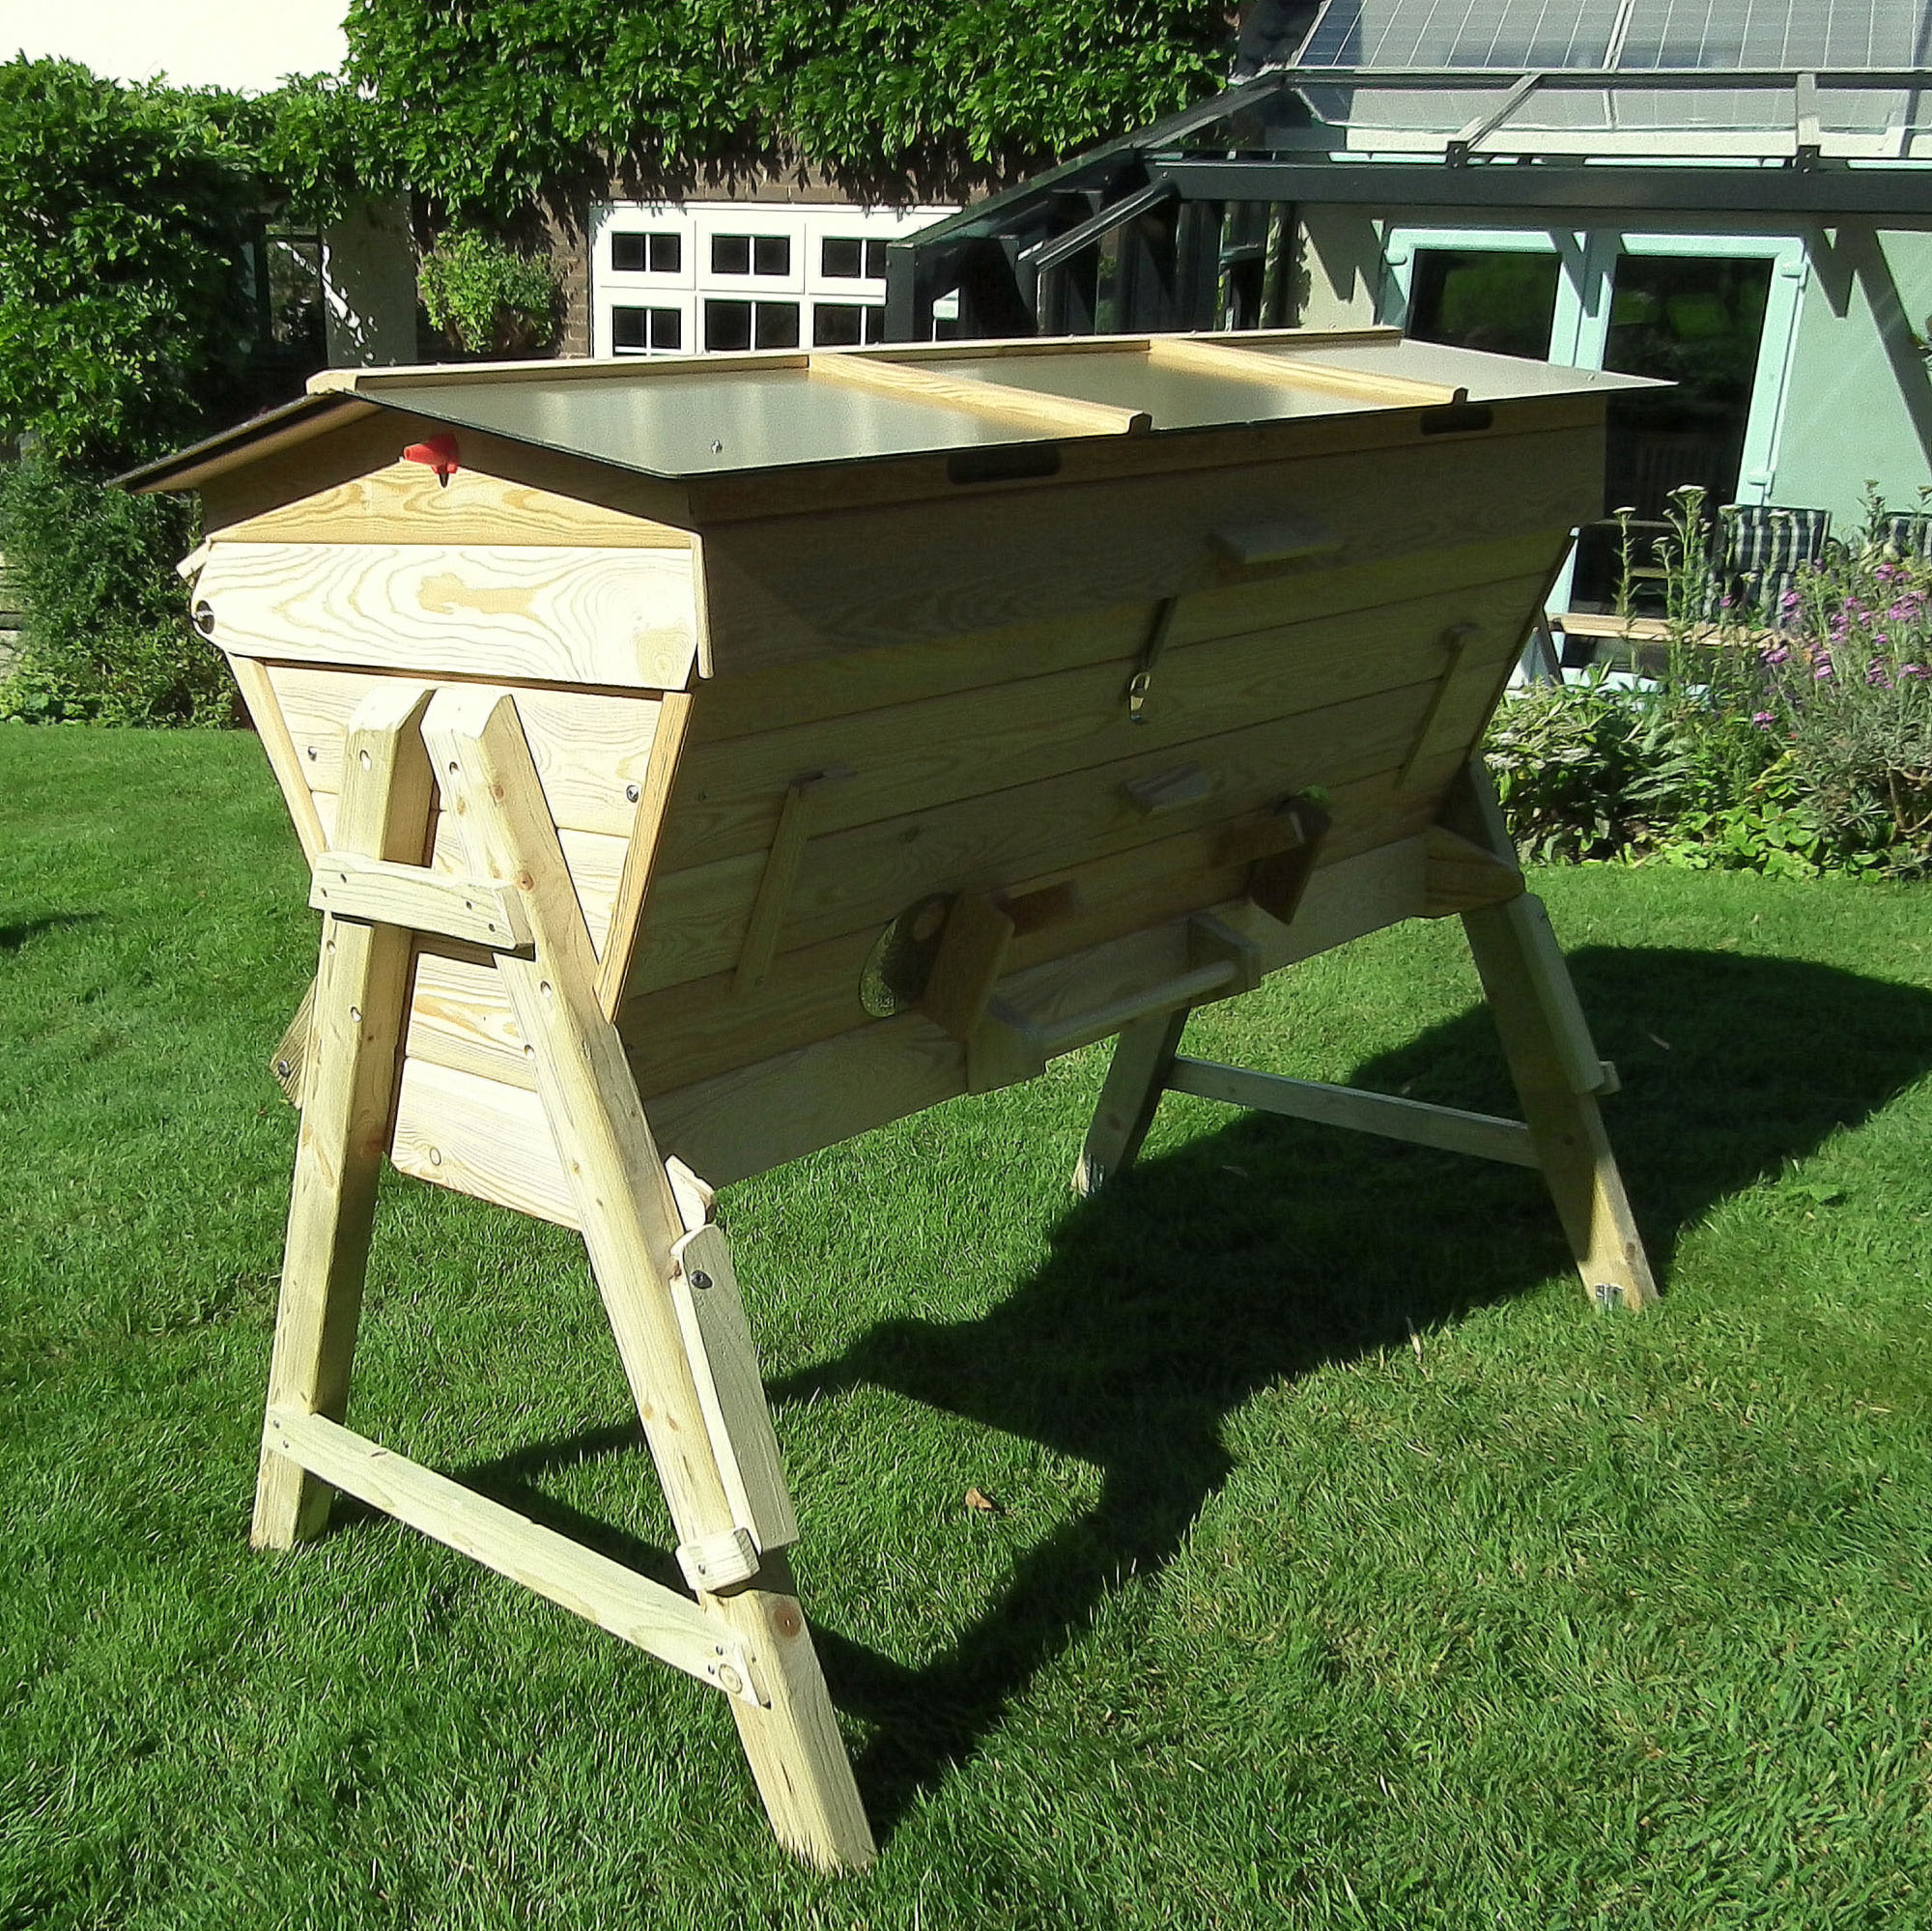 The Beehive Maker